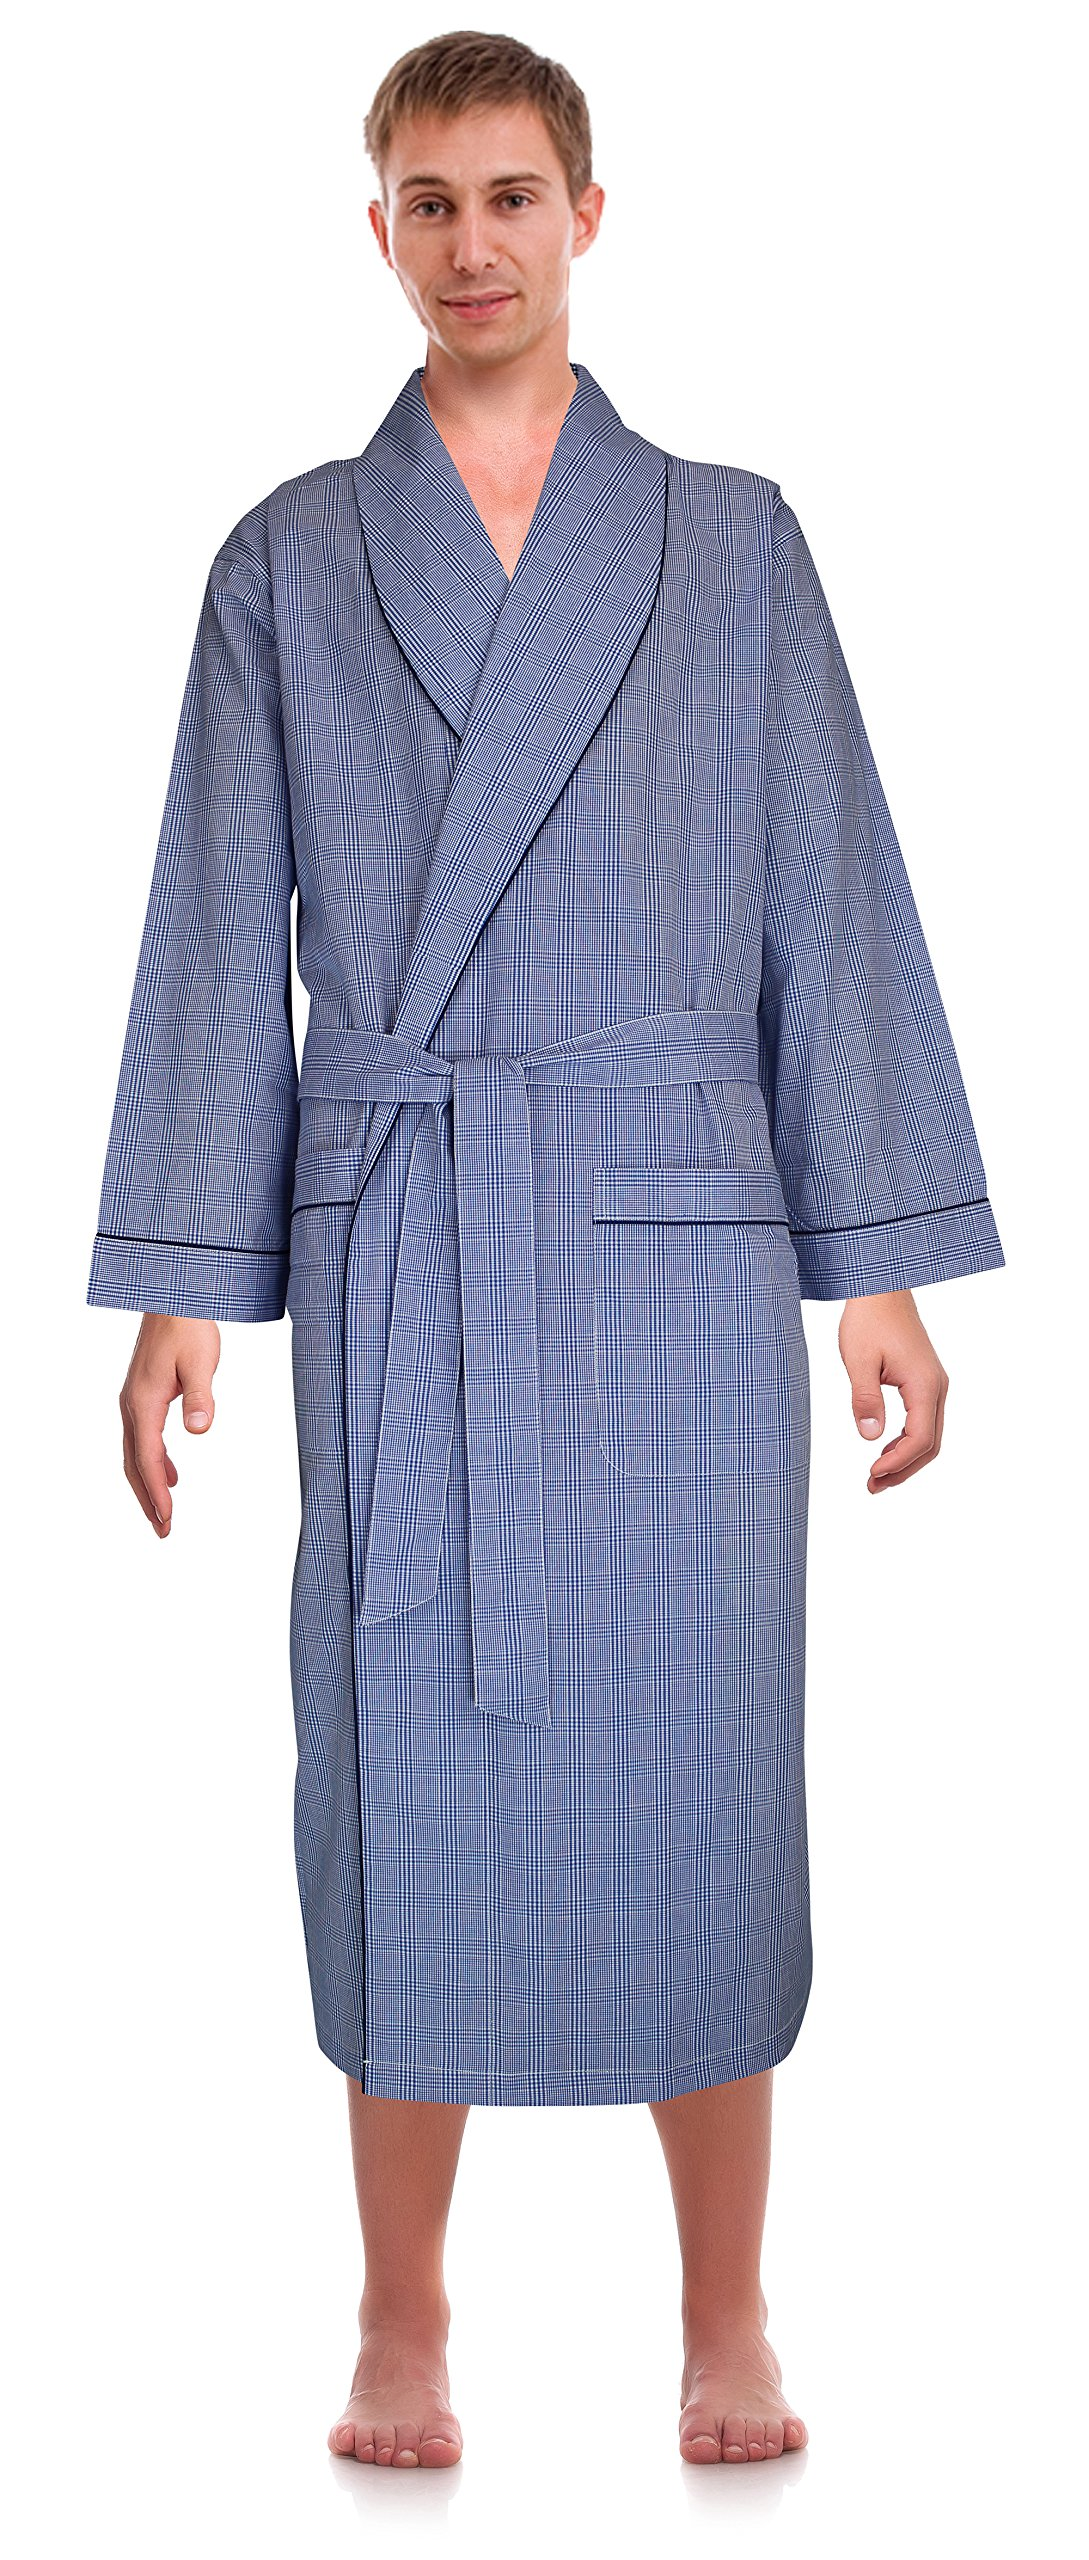 Robes King Classical Sleepwear Men's Woven Shawl Collar Robe, Size 2X Extra Large 3X Extra Large